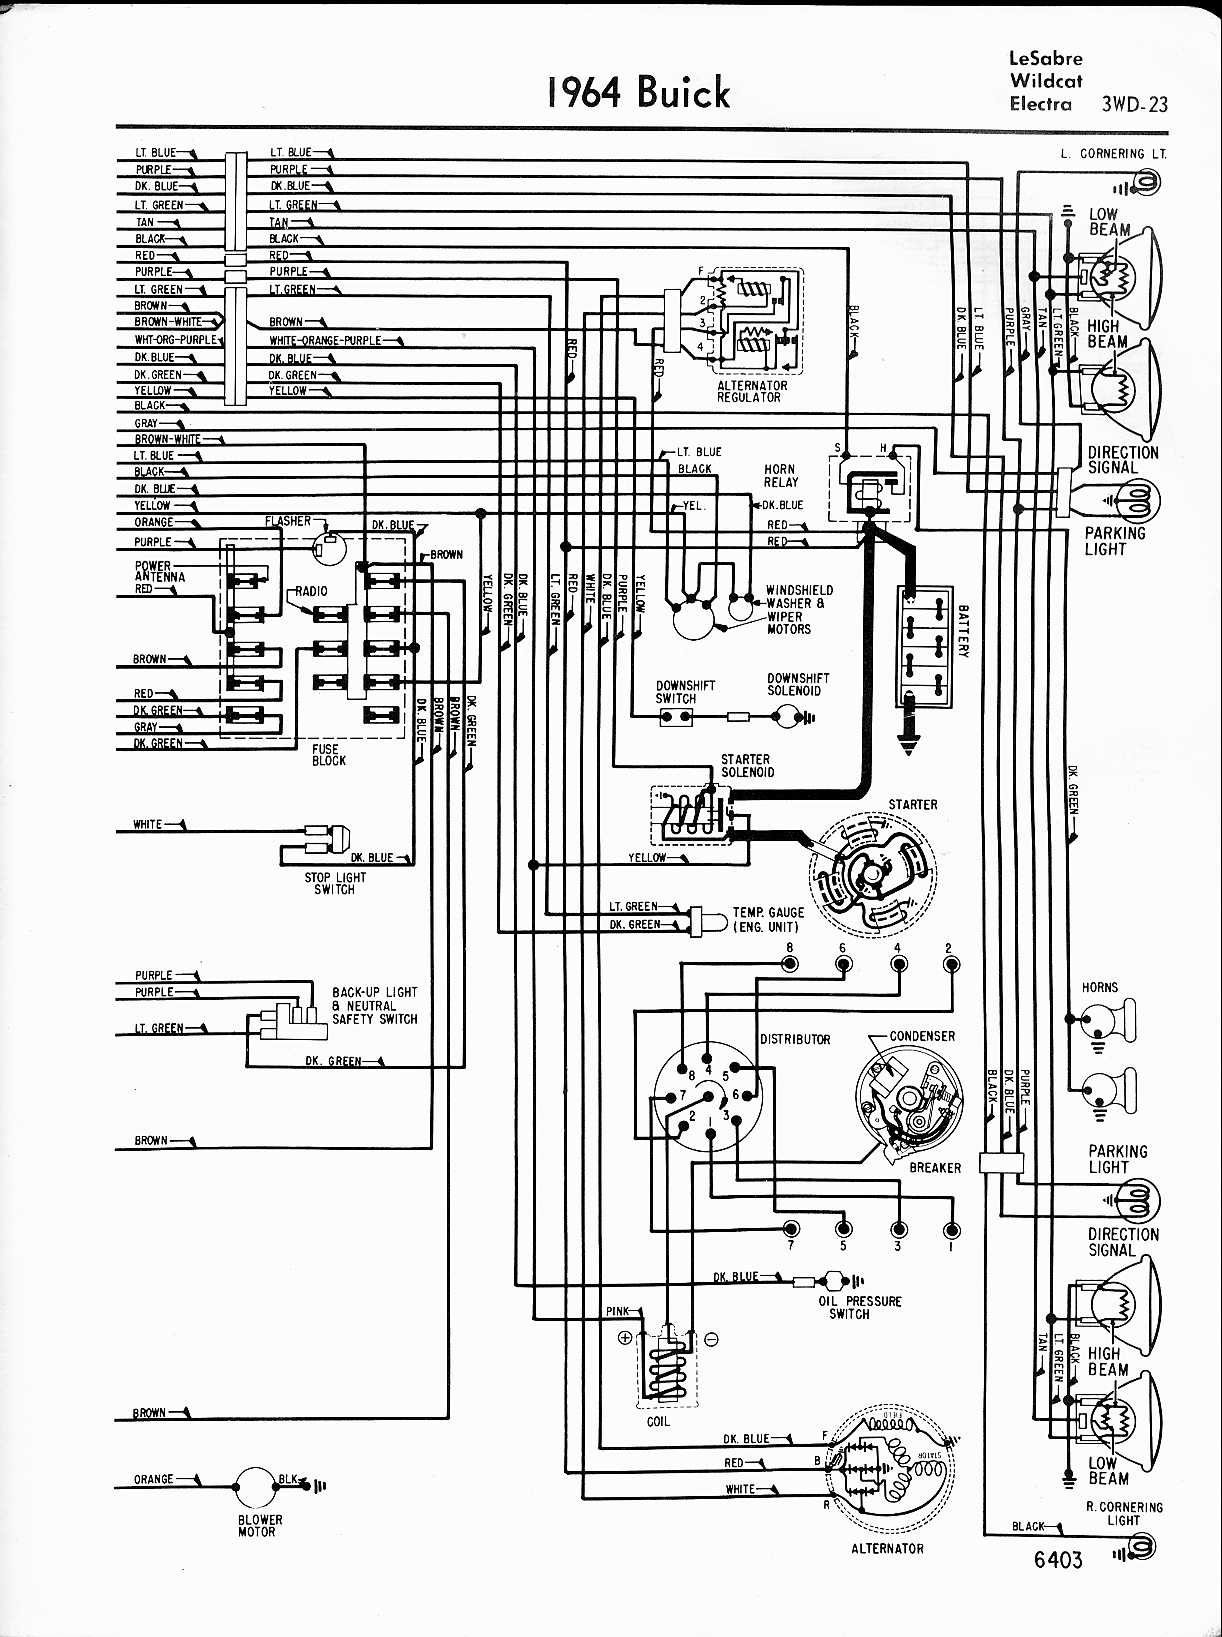 MWireBuic65_3WD 023 2001 buick regal wiring diagram 2001 mazda tribute wiring diagram 2001 buick century power window wiring diagram at readyjetset.co